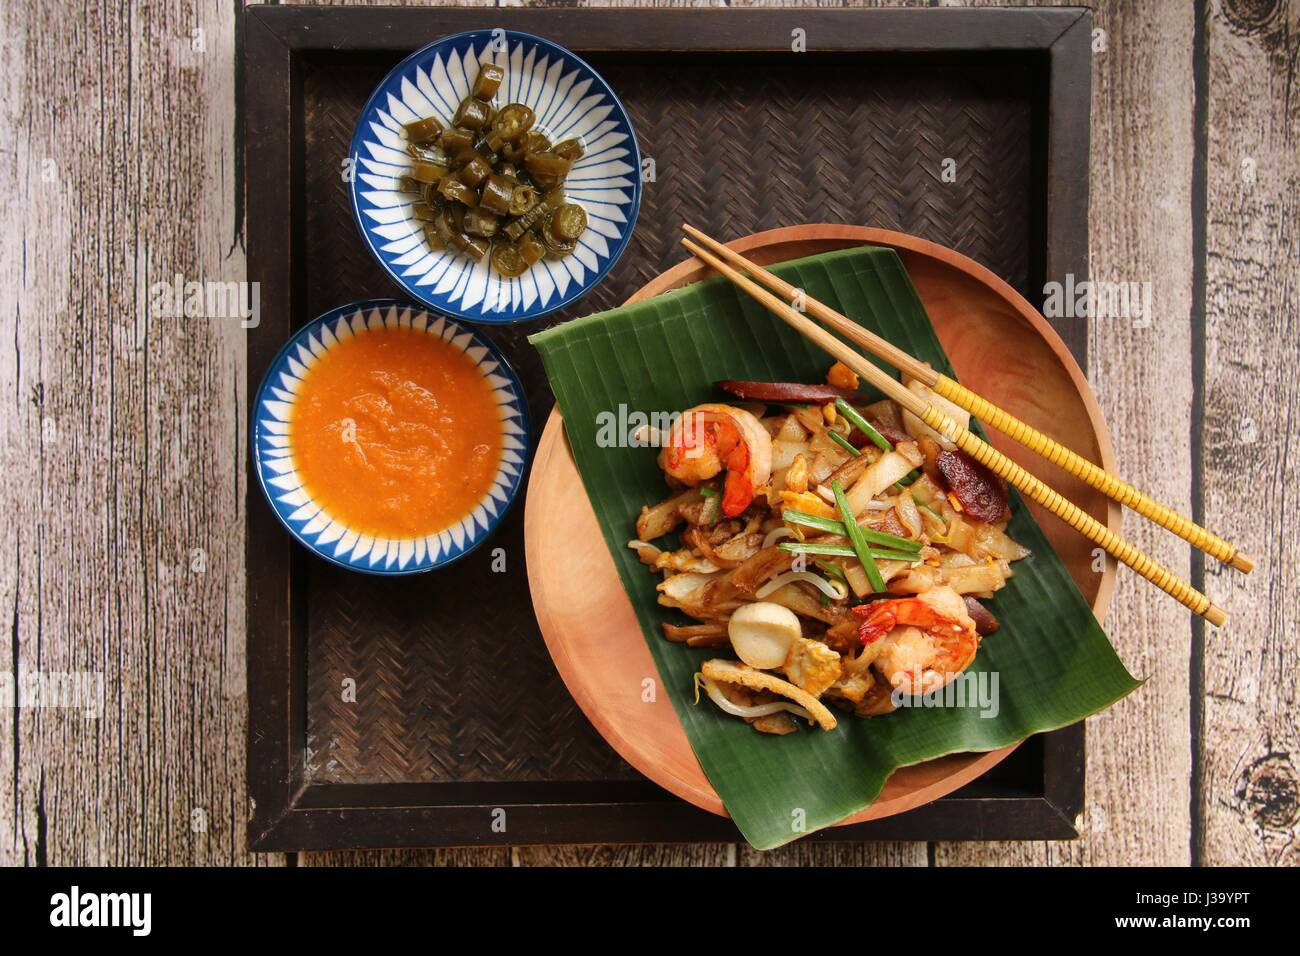 Singapore hawker food stock photos singapore hawker food stock char kway teow stir fried flat rice noodles with shrimps sausage beansprouts forumfinder Images